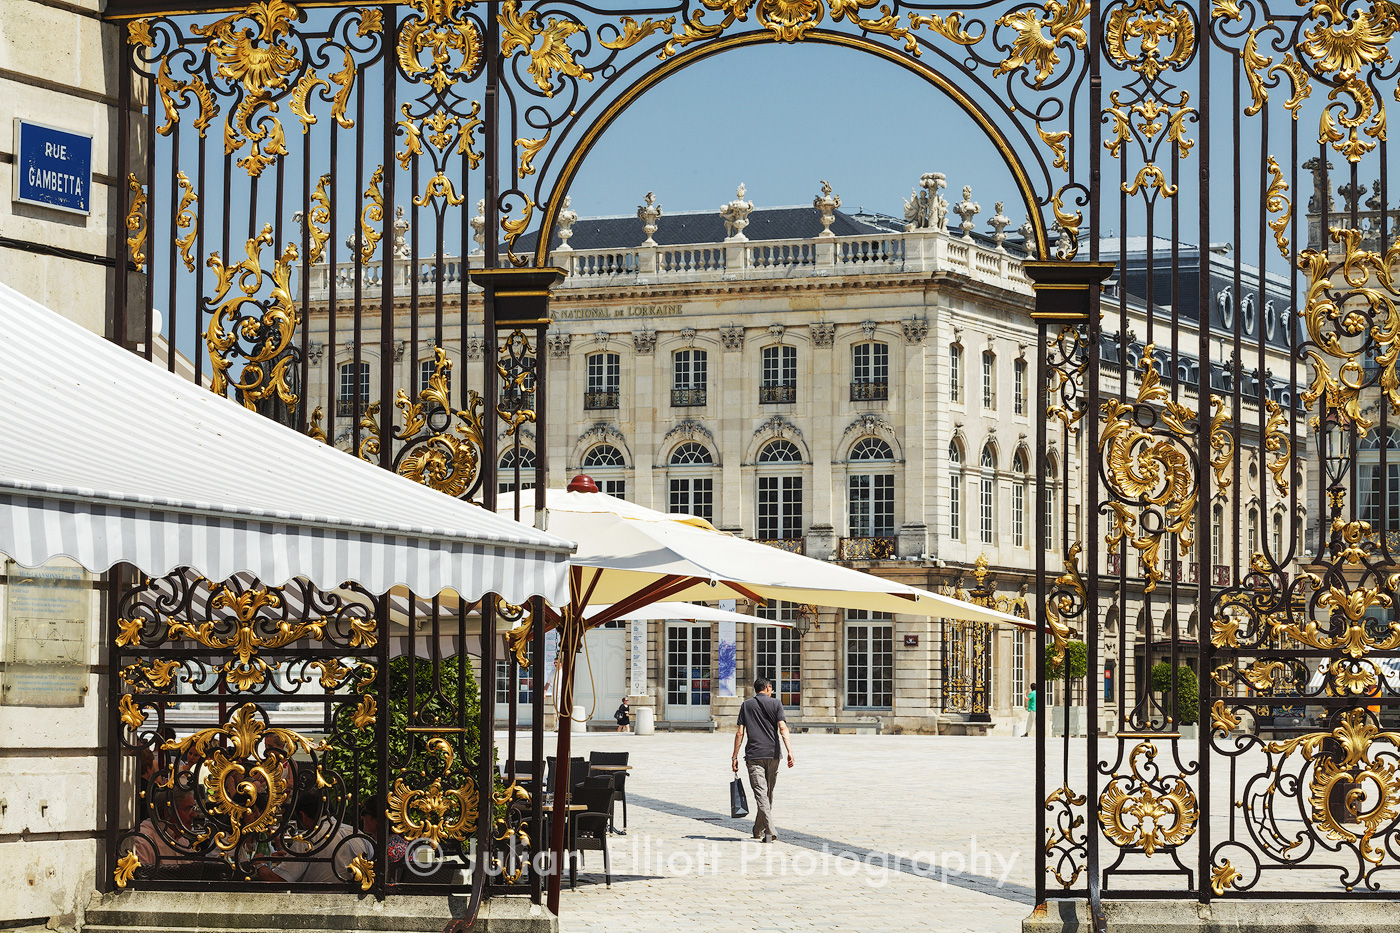 Place Stanislas in Nancy, France.